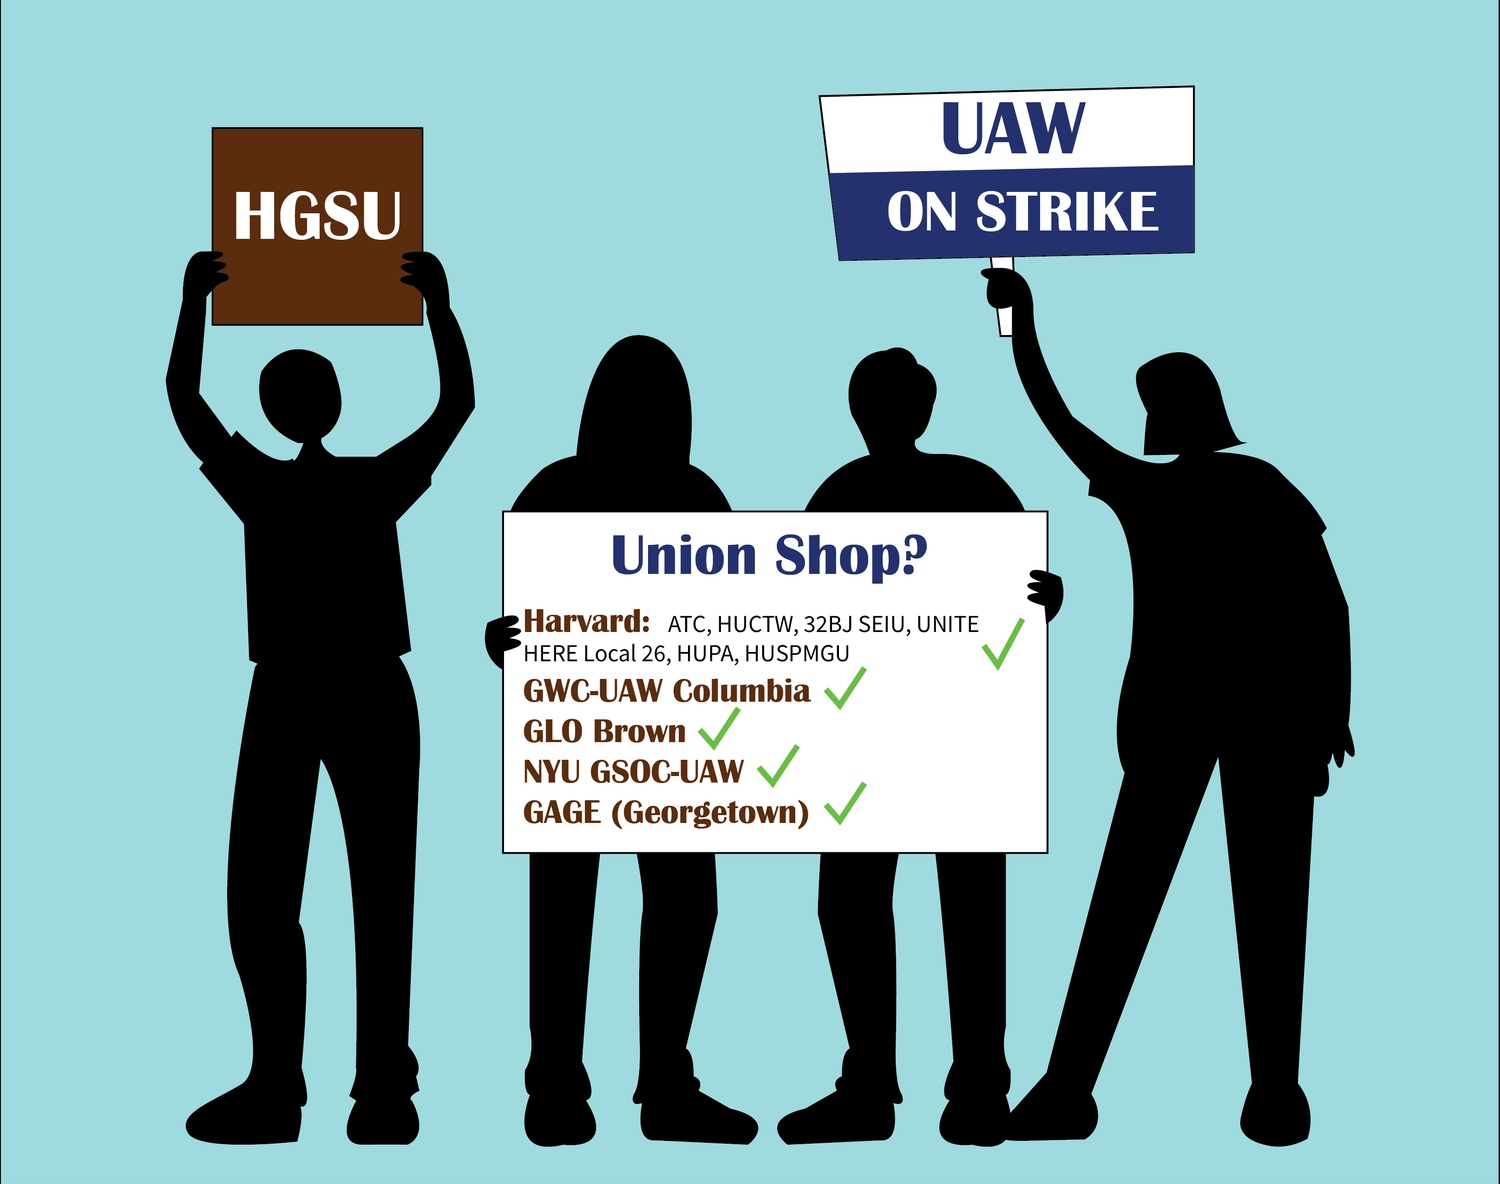 HGSU-UAW is the only union at Harvard with an open shop, meaning it does not exact fees from all the students in its bargaining unit.